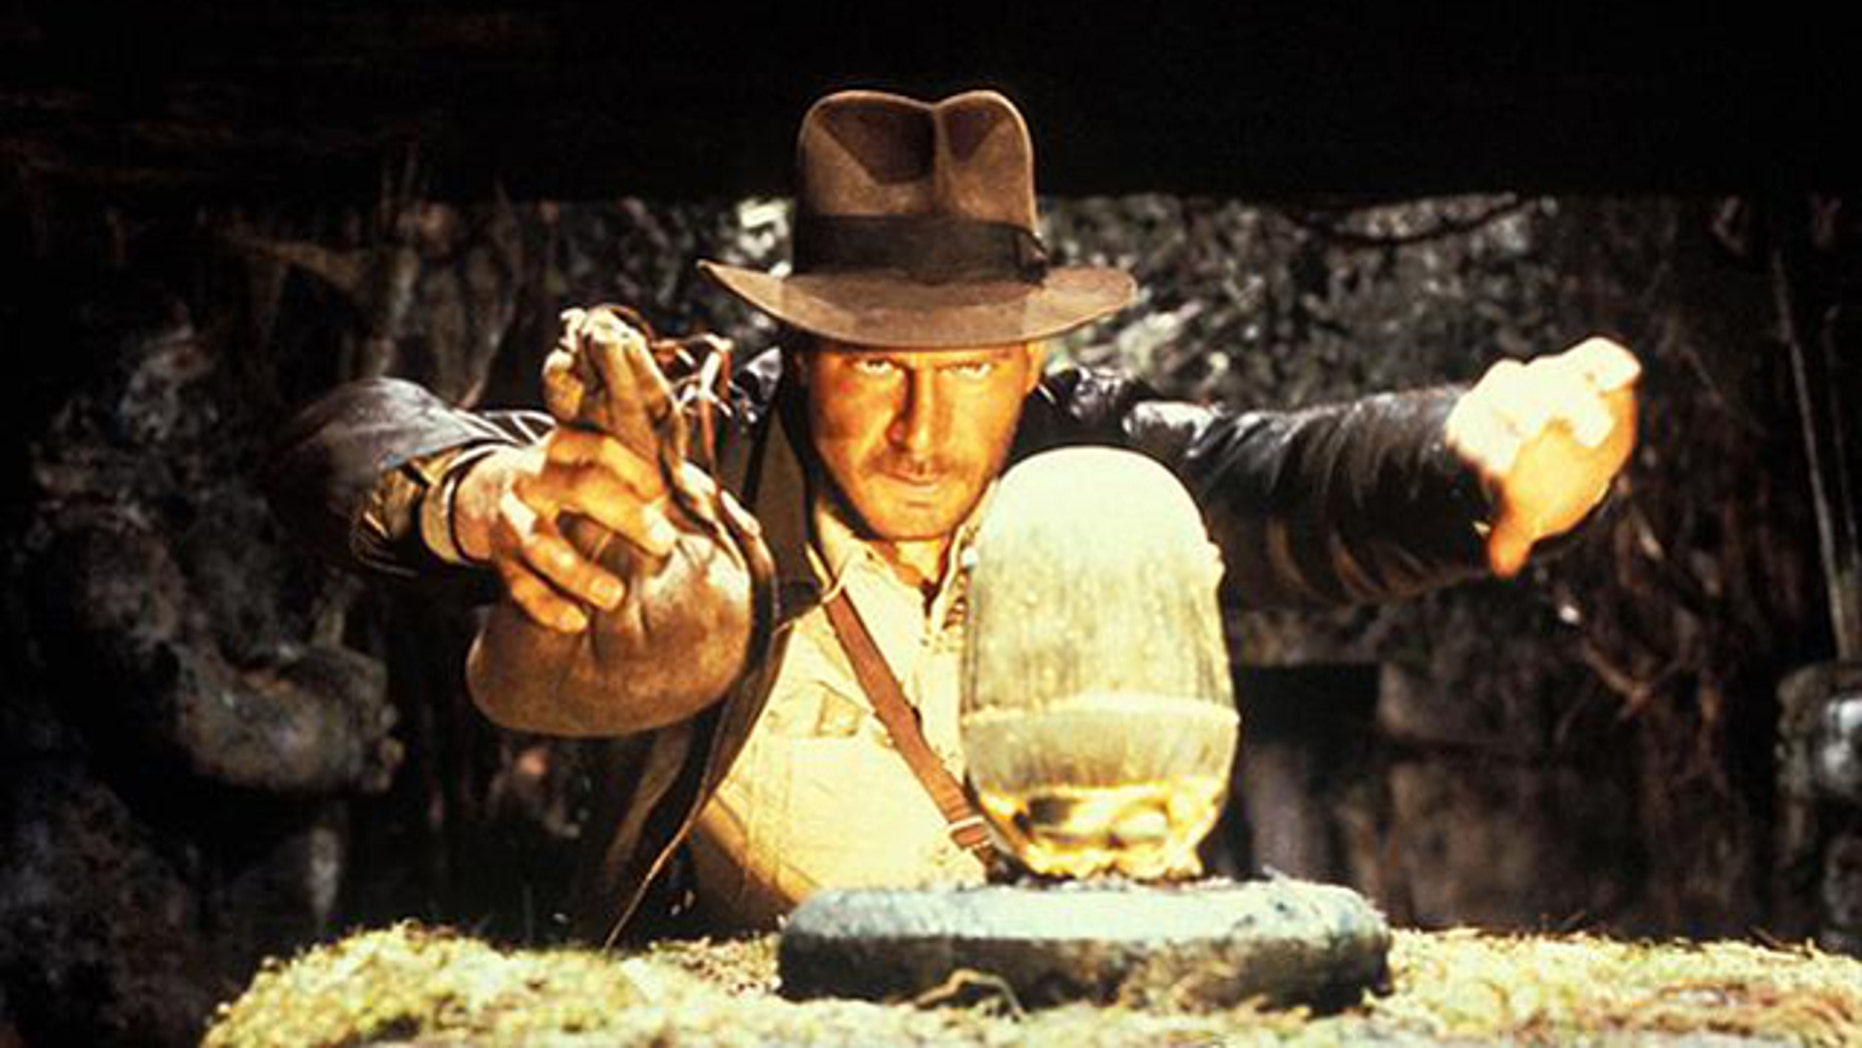 Iconic scenes from over 100 years of cinema -- and such memorable characters as Harrison Ford's Indiana Jones -- have all come to us via film. But will the switch to digital projectors affect movie goers?